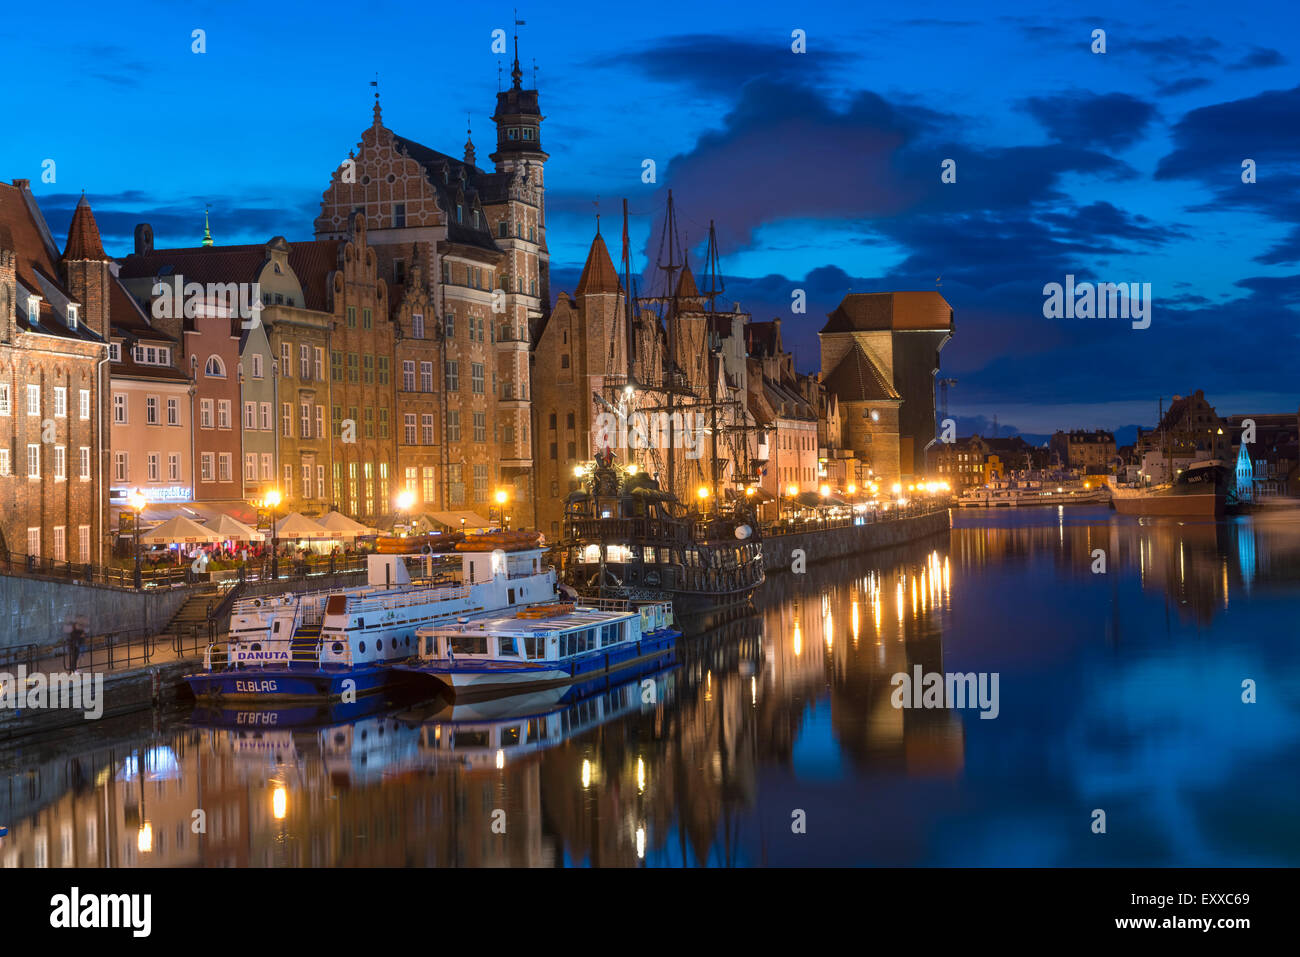 Gdansk, Poland - Beautiful, historic old town district of Gdansk, Poland on the banks of the River Motlawa at night - Stock Image